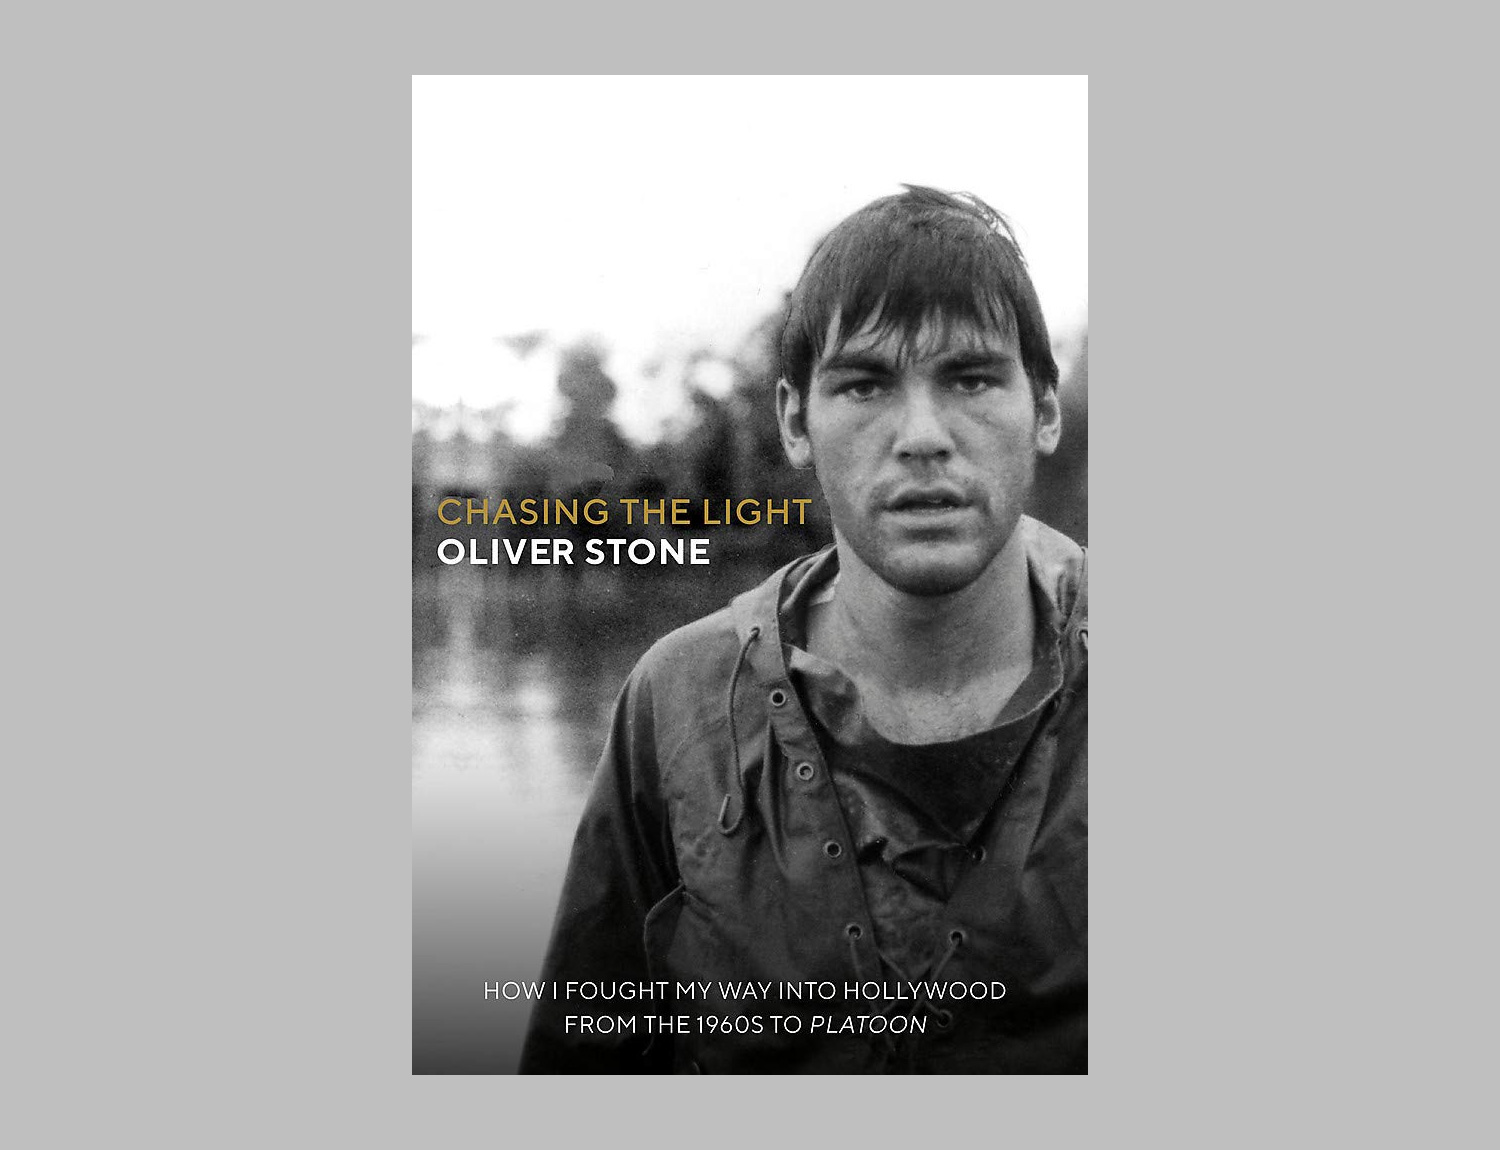 Oliver Stone Pens Movie Memoir: Chasing The Light at werd.com